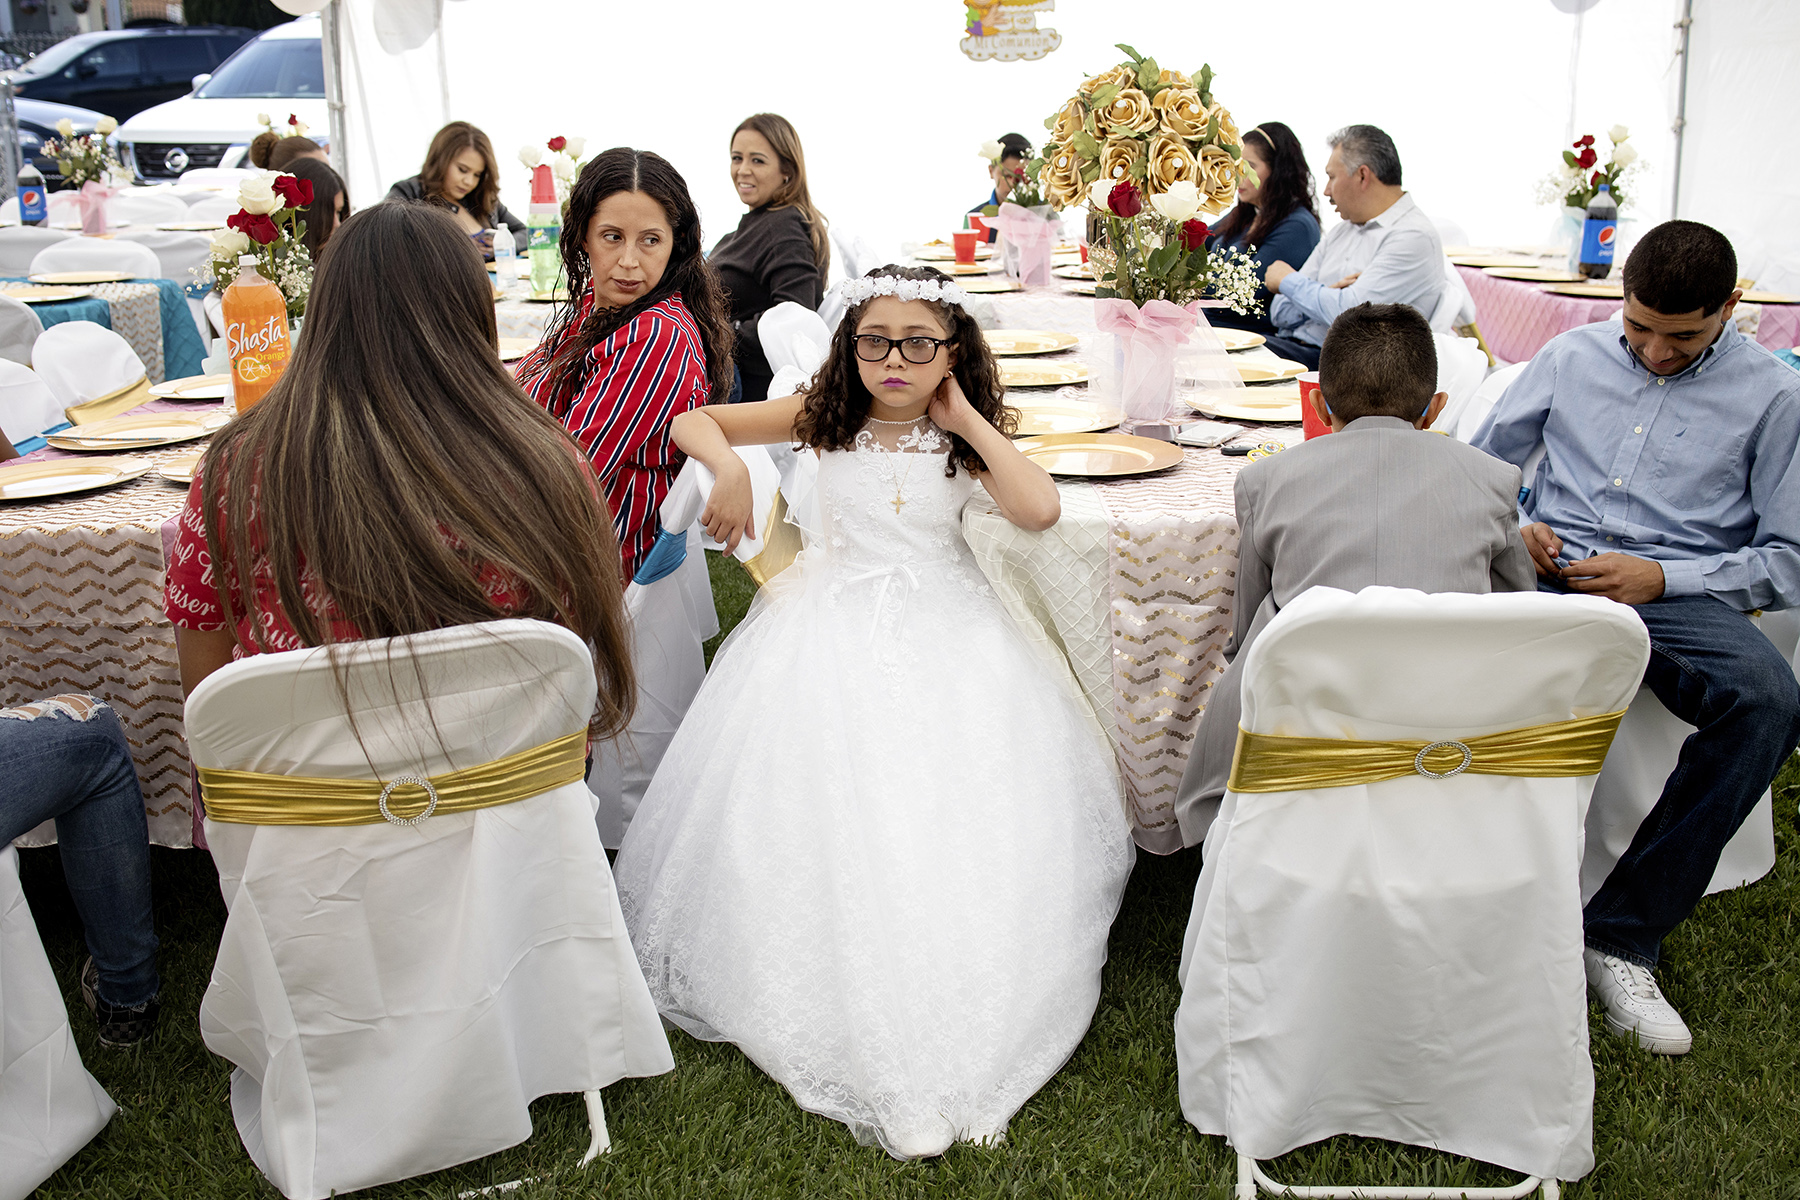 Wendy Figueroa rests with relatives during her first communion party, which she shared with her brother Denis, in a tent in her family's driveway, in East Palo Alto, Calif., on  May 4, 2019. East Palo Alto, located in Silicon Valley, has a strong and close-knit Latino community with an estimated 63.2% of the population identifying as Latino according to the U.S. Census Bureau.